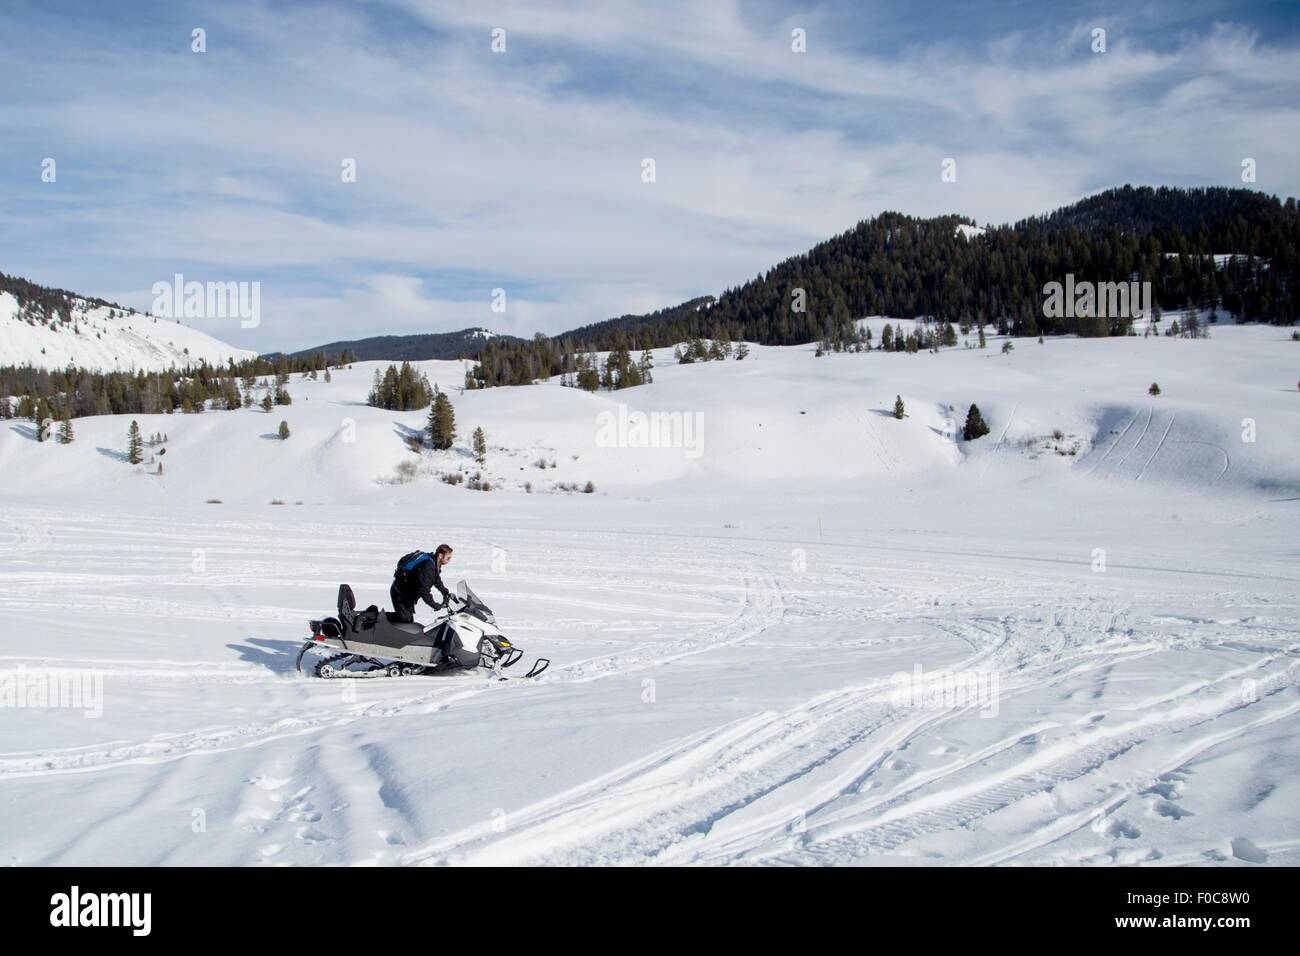 Man on snowmobile, Jackson Hole, Wyoming - Stock Image